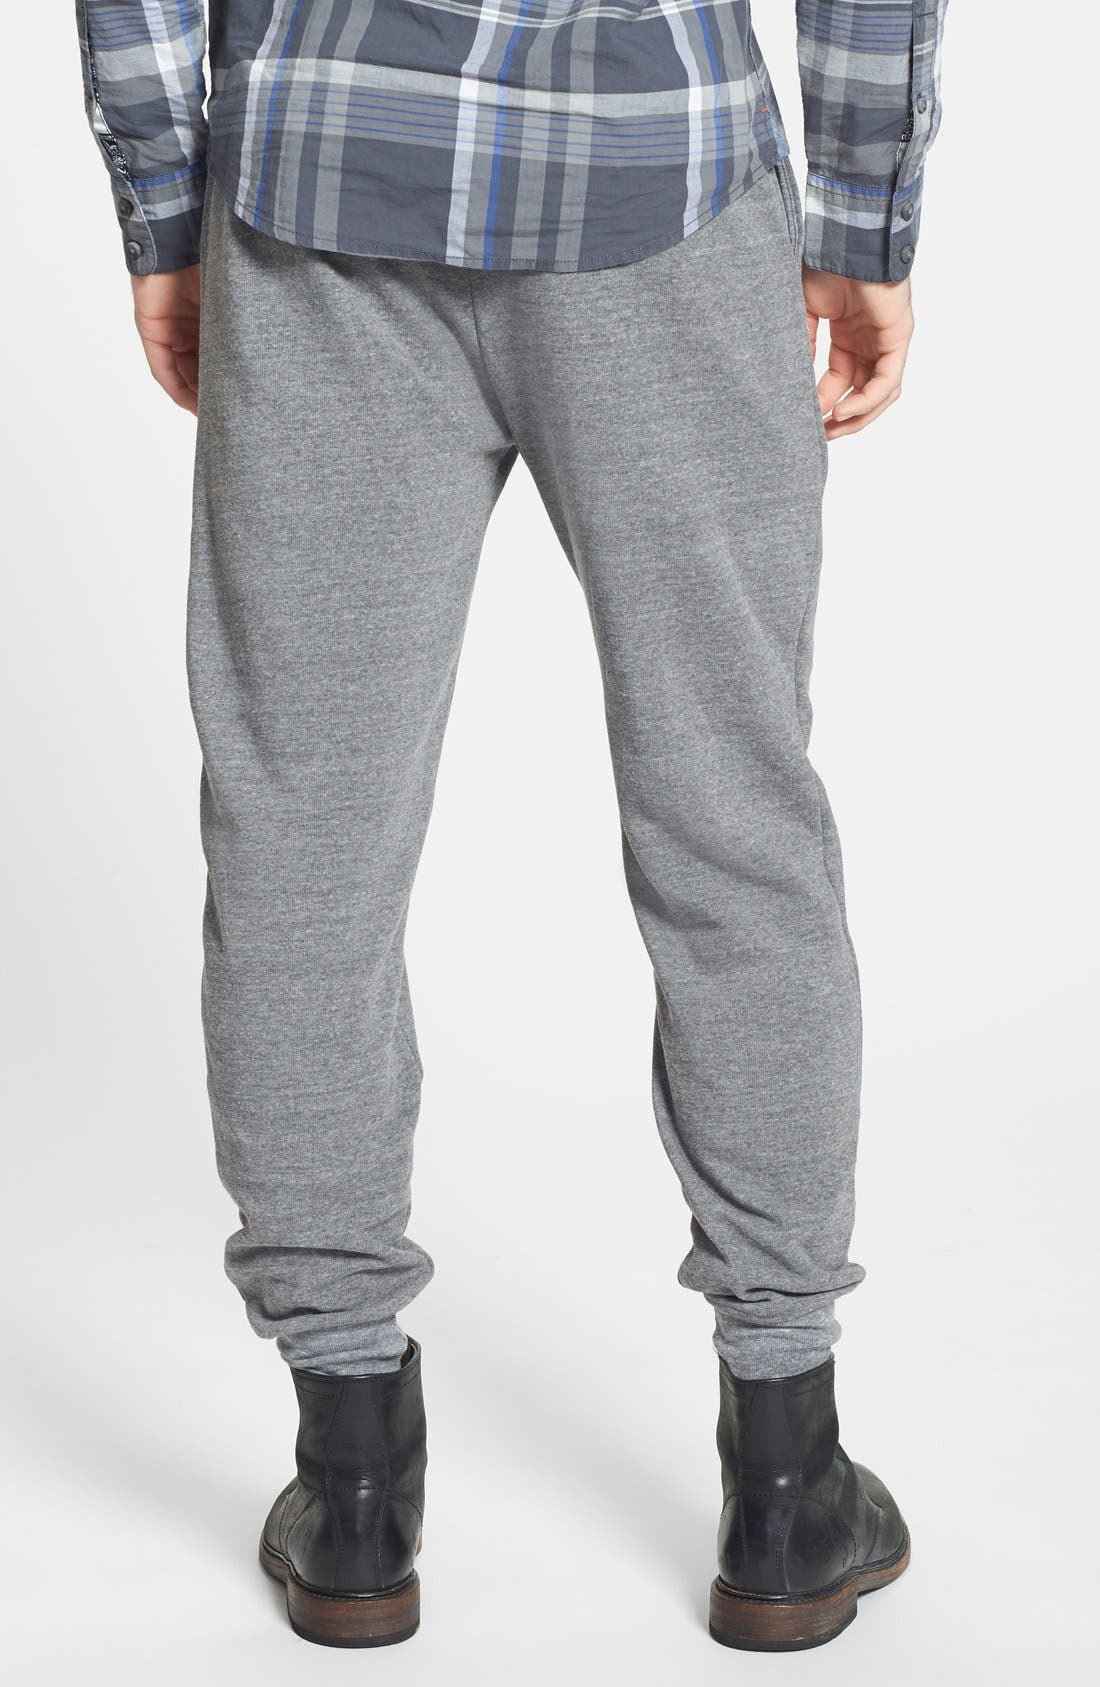 'Dodgeball' Eco Fleece Sweatpants,                             Alternate thumbnail 27, color,